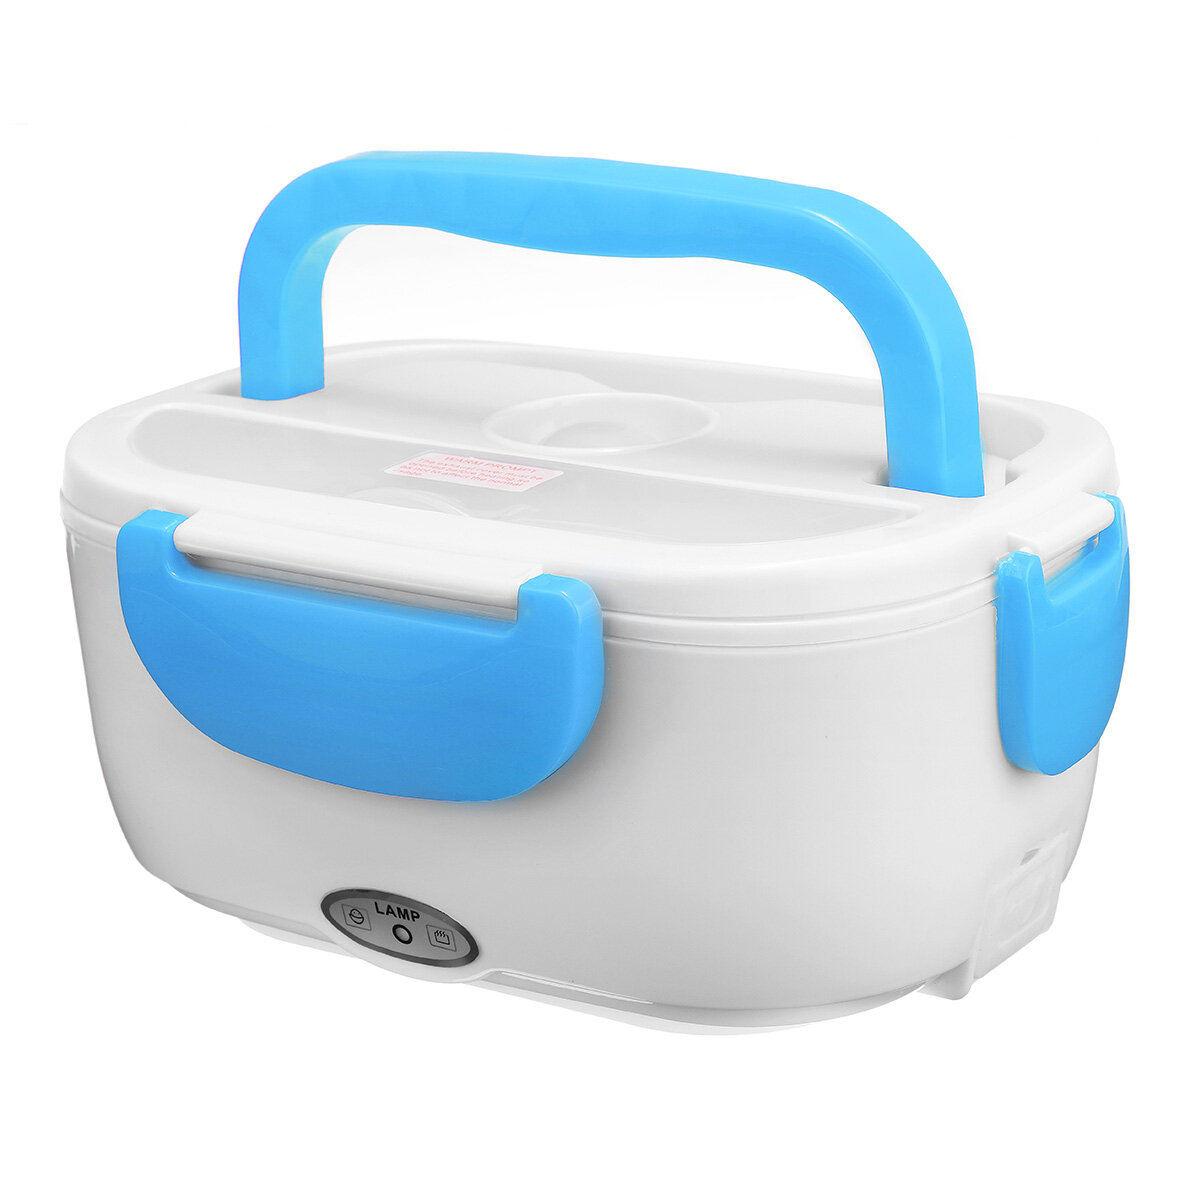 1.2L 220V 40W Electric Lunch Box Heated Food Container Car Plug Picnic Bento